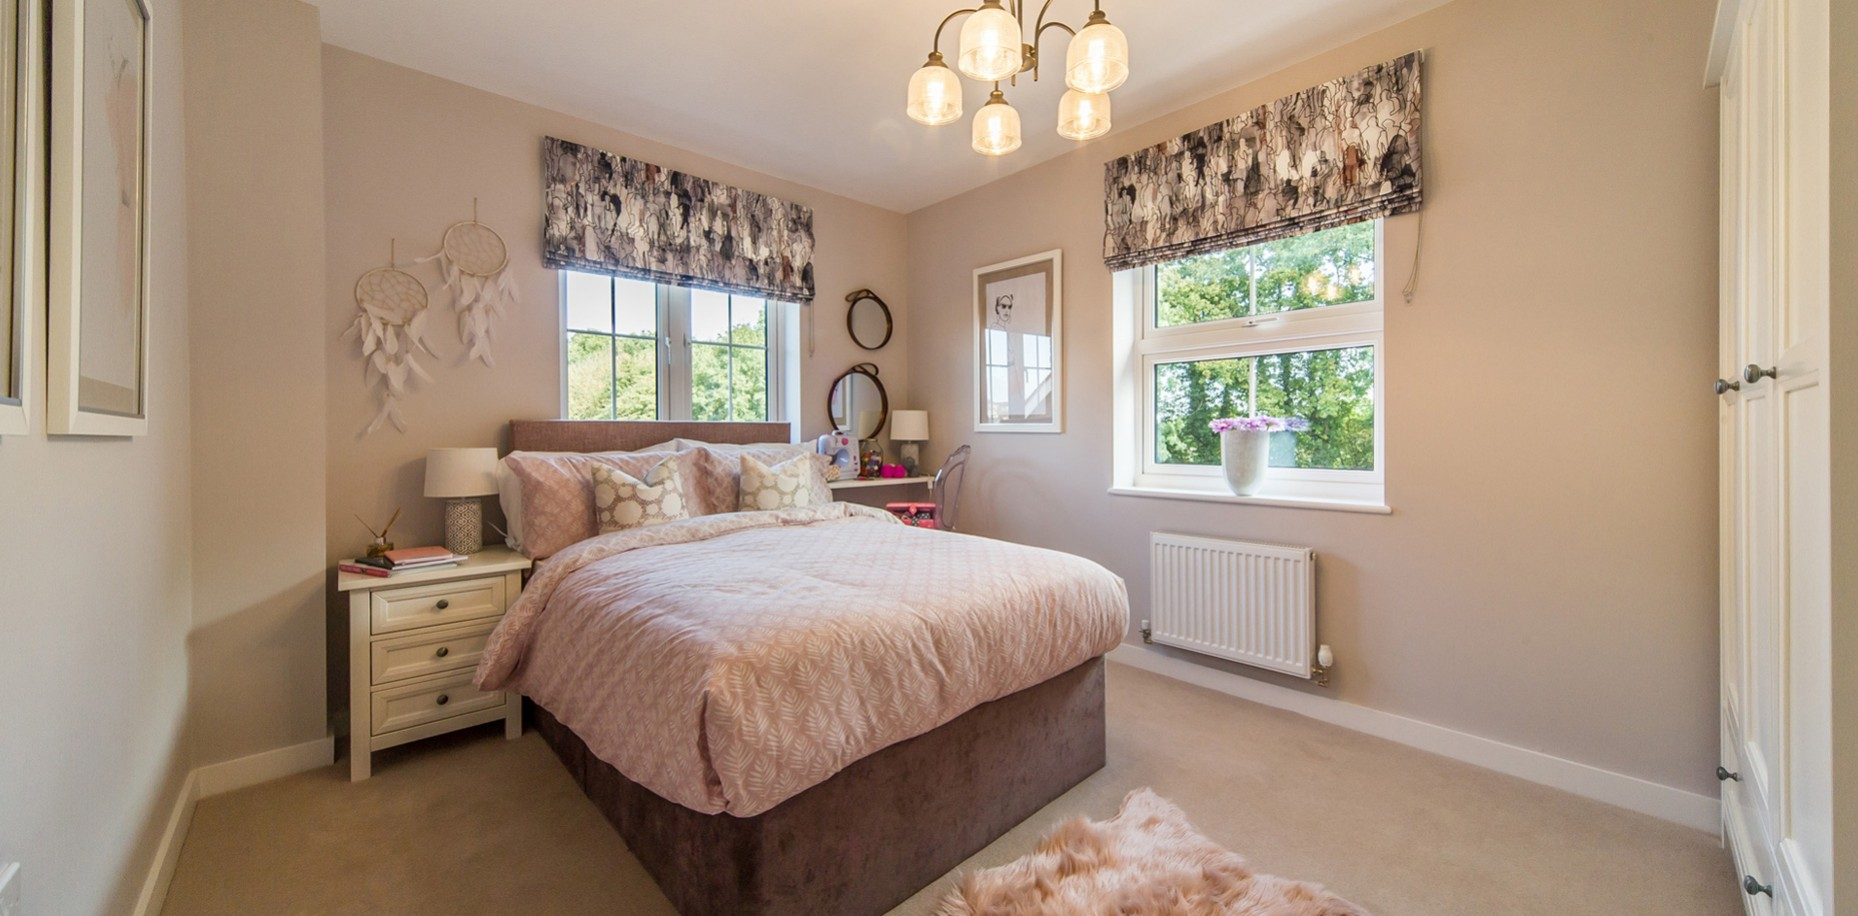 A new uber-smart show home has opened at Kings Oak Park, Headcorn. Book your appointment to view this weekend.